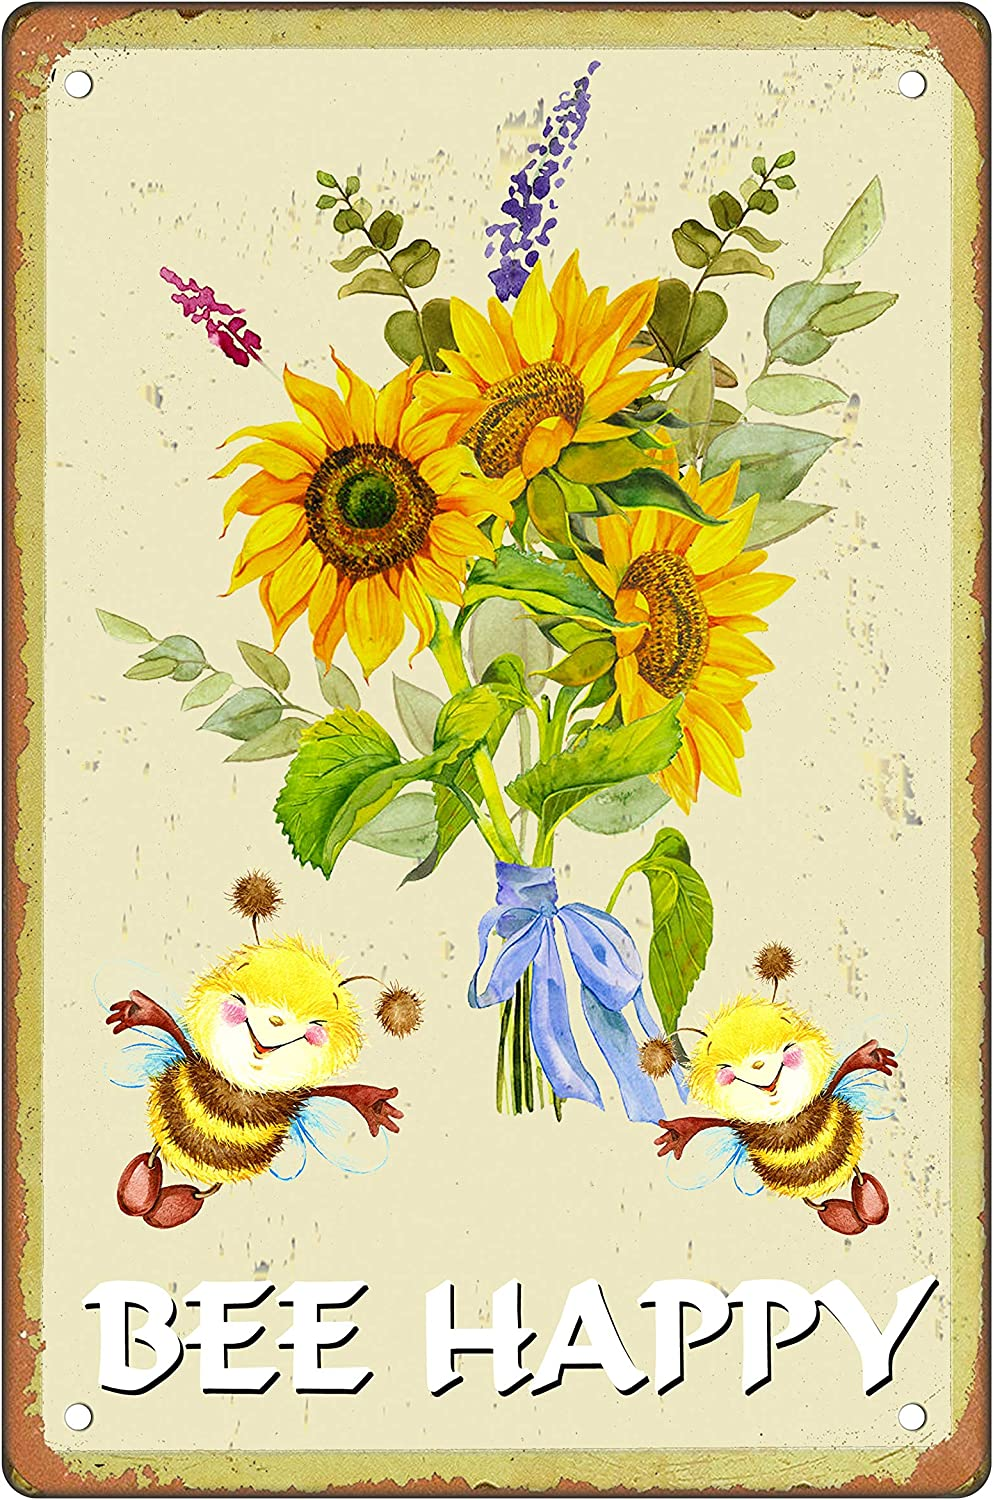 Asoodoo Retro Metal Tin Sign Vintage Sunflower Bee Happy Aluminum Sign for Home Coffee Wall Decor 8x12 Inch